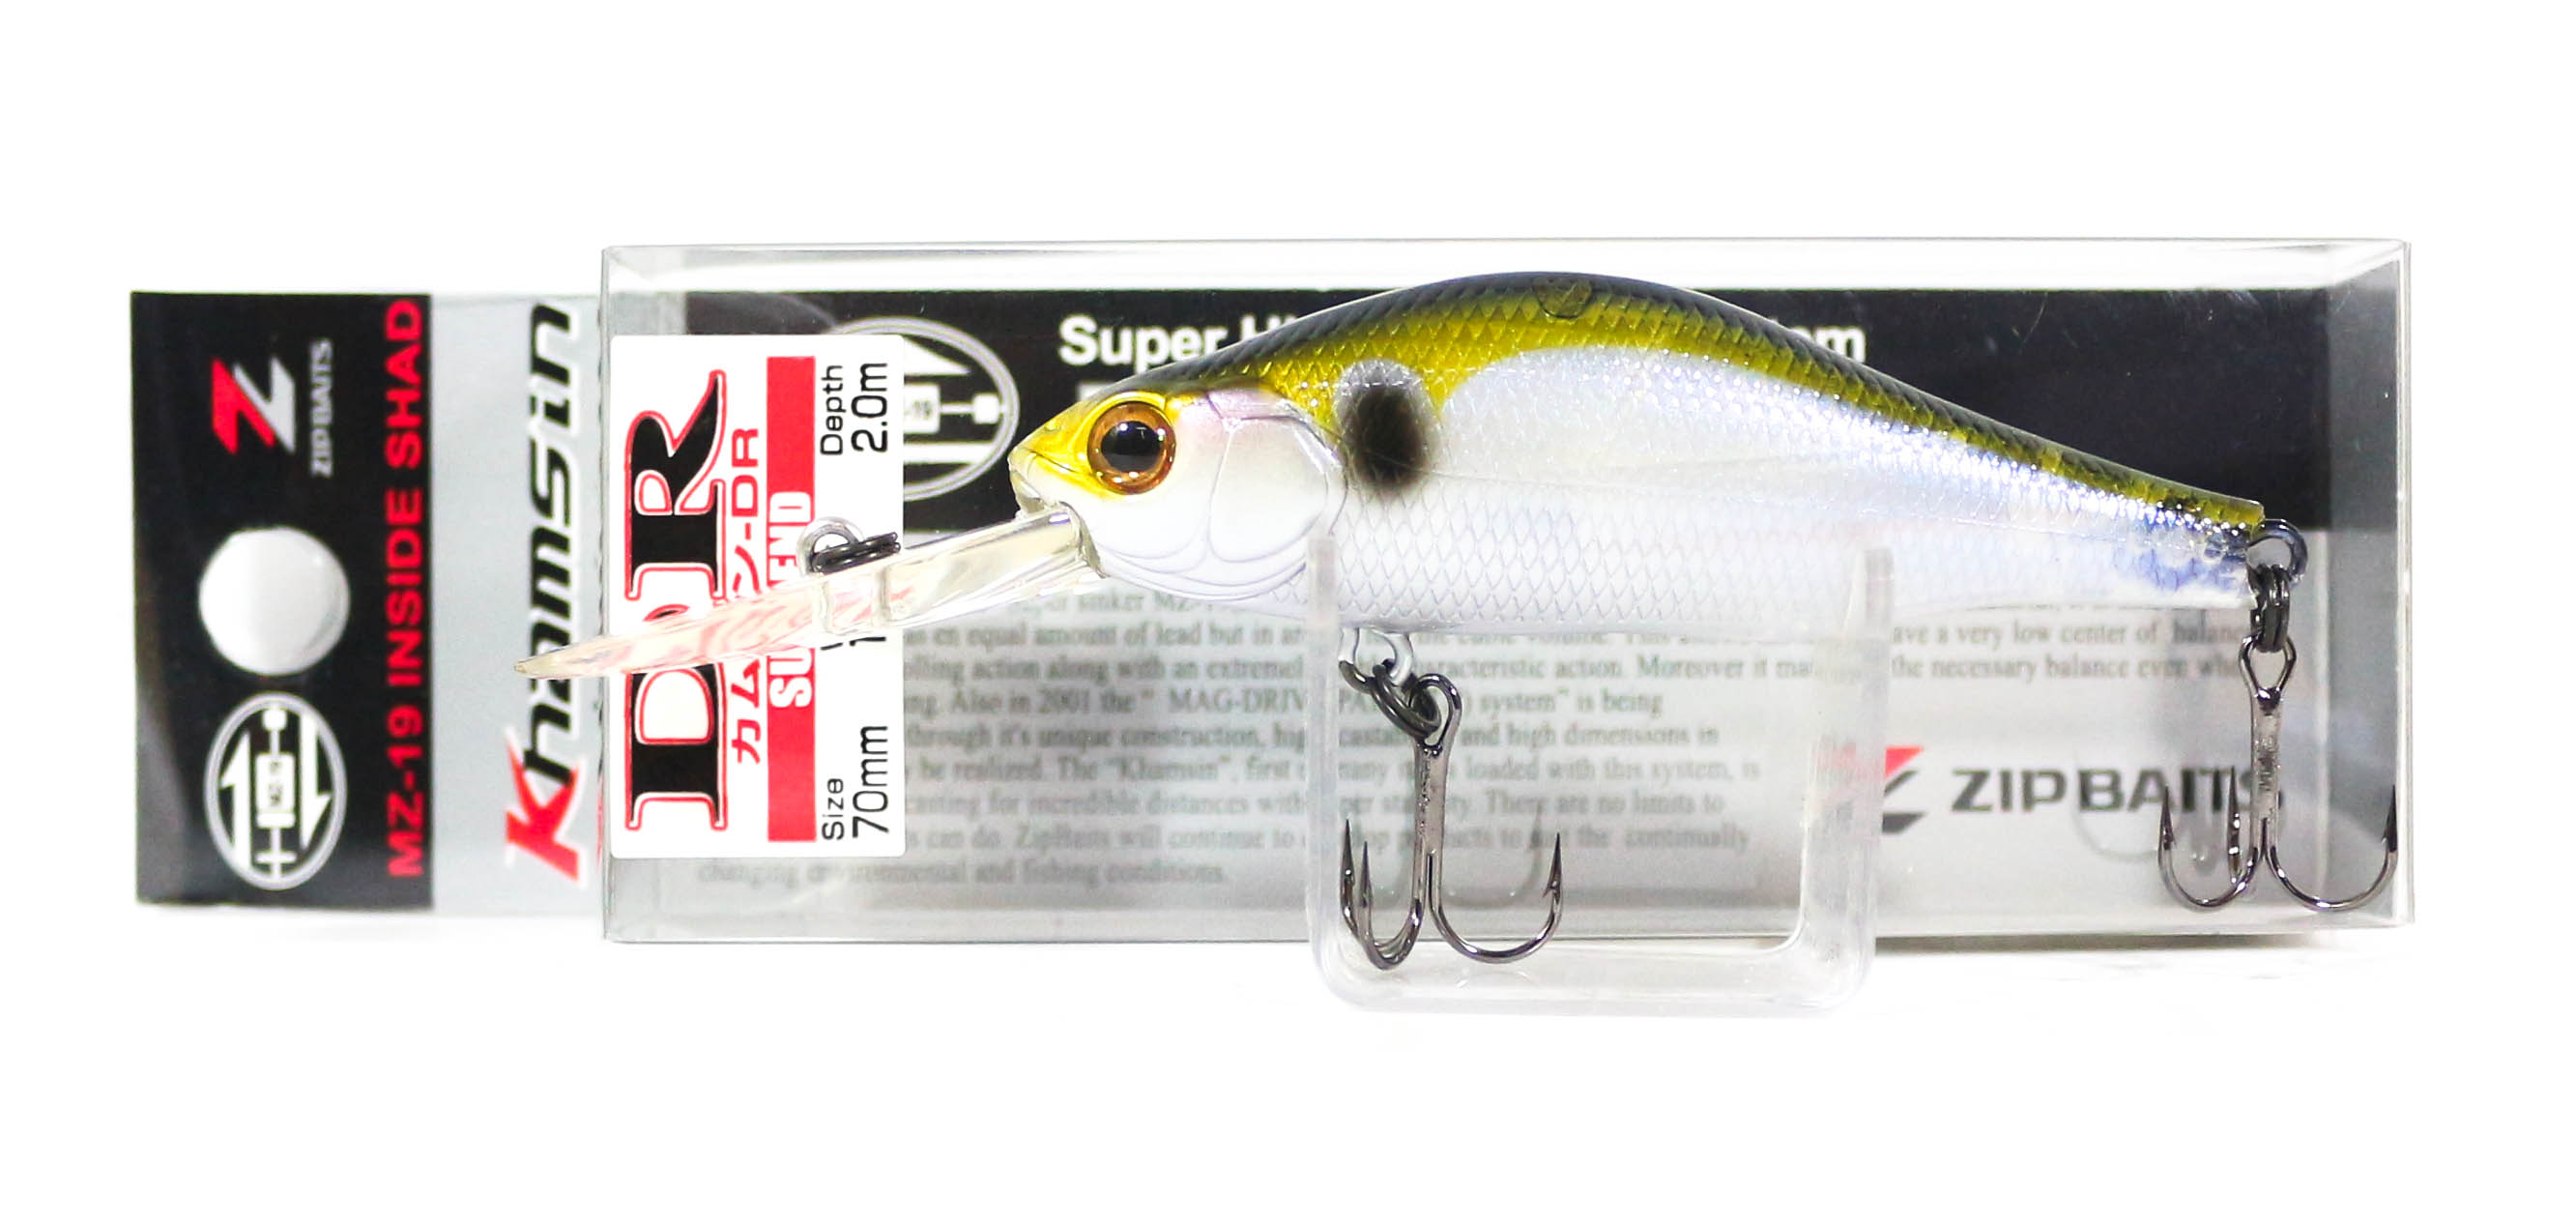 Zipbaits Khamsin DR 70mm Suspend Lure 018 (9246)